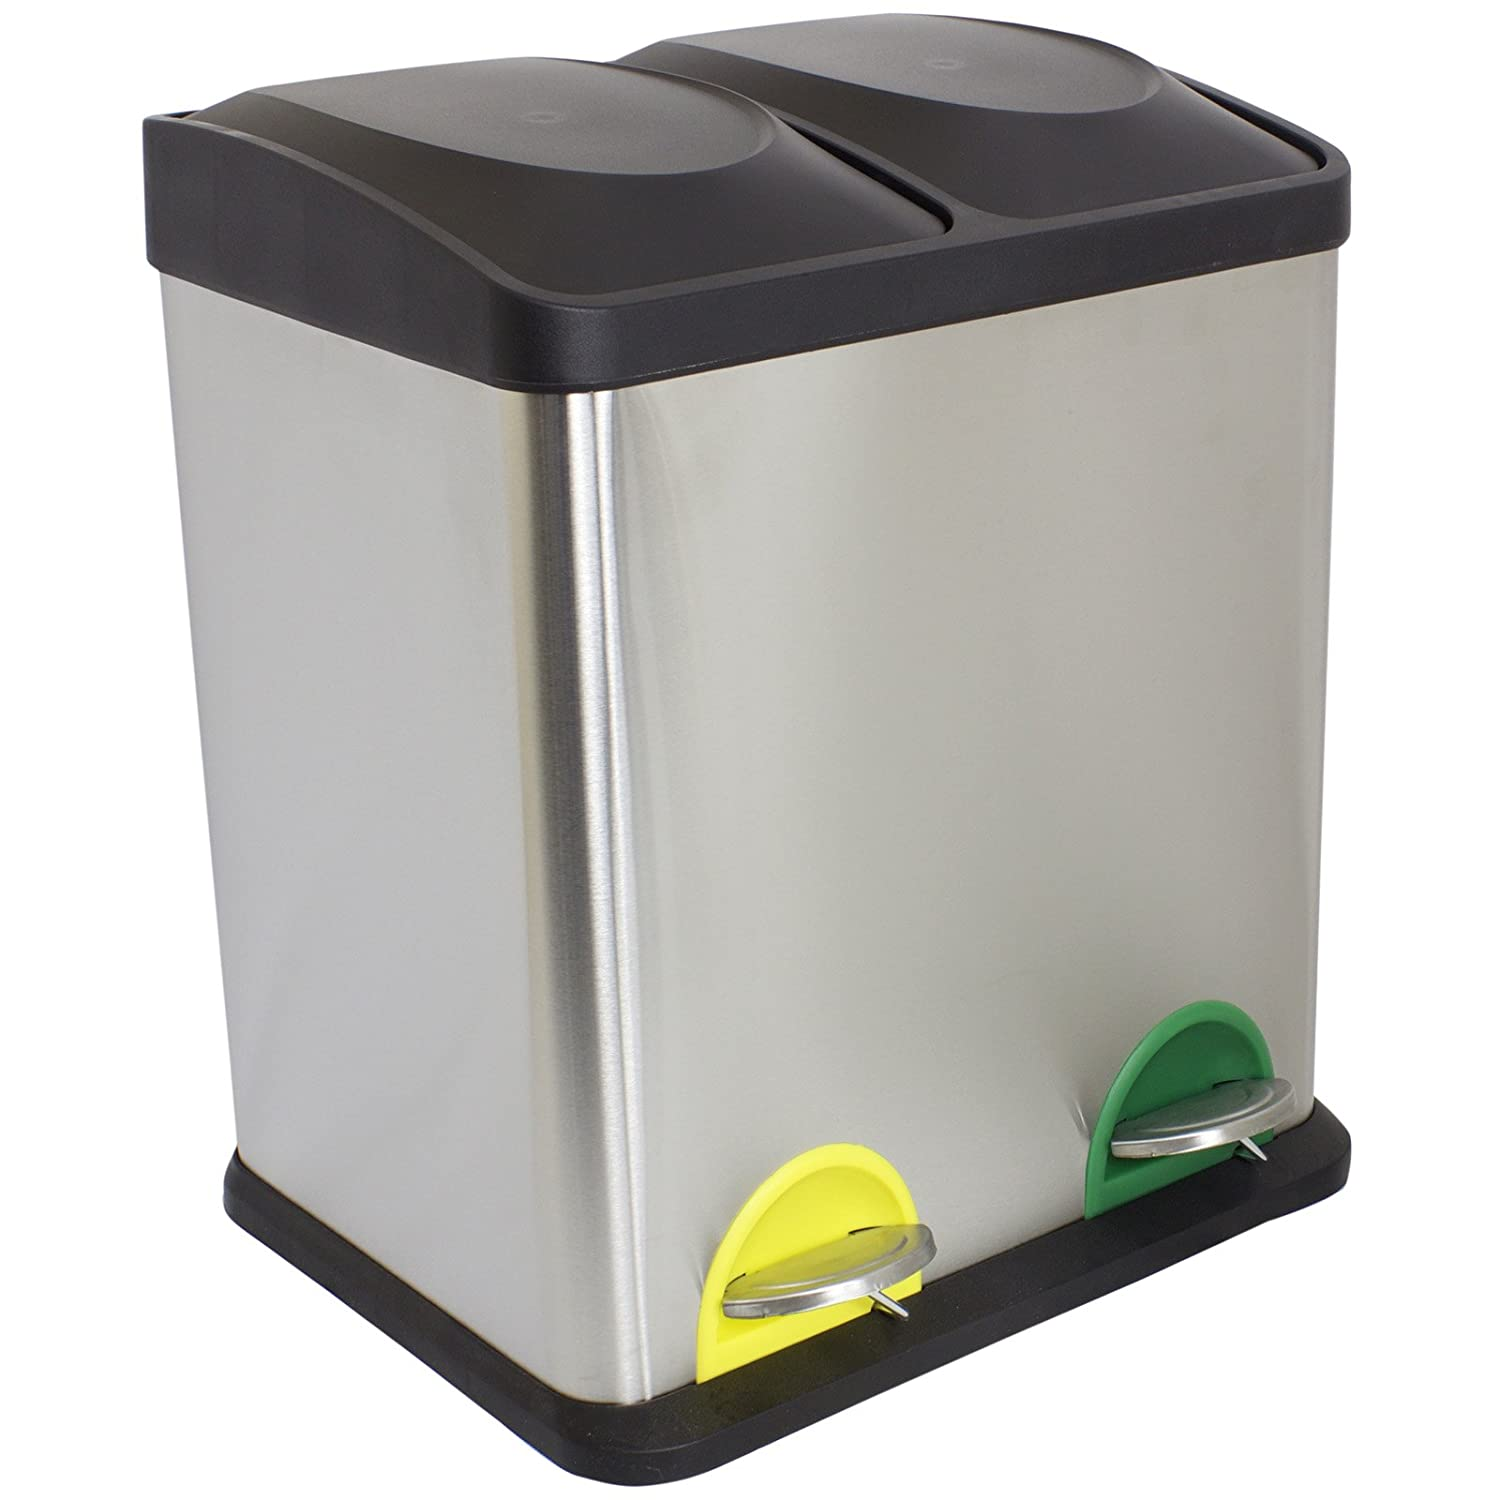 Hartleys 30 Litre Stainless Steel Double Recycling Pedal Bin